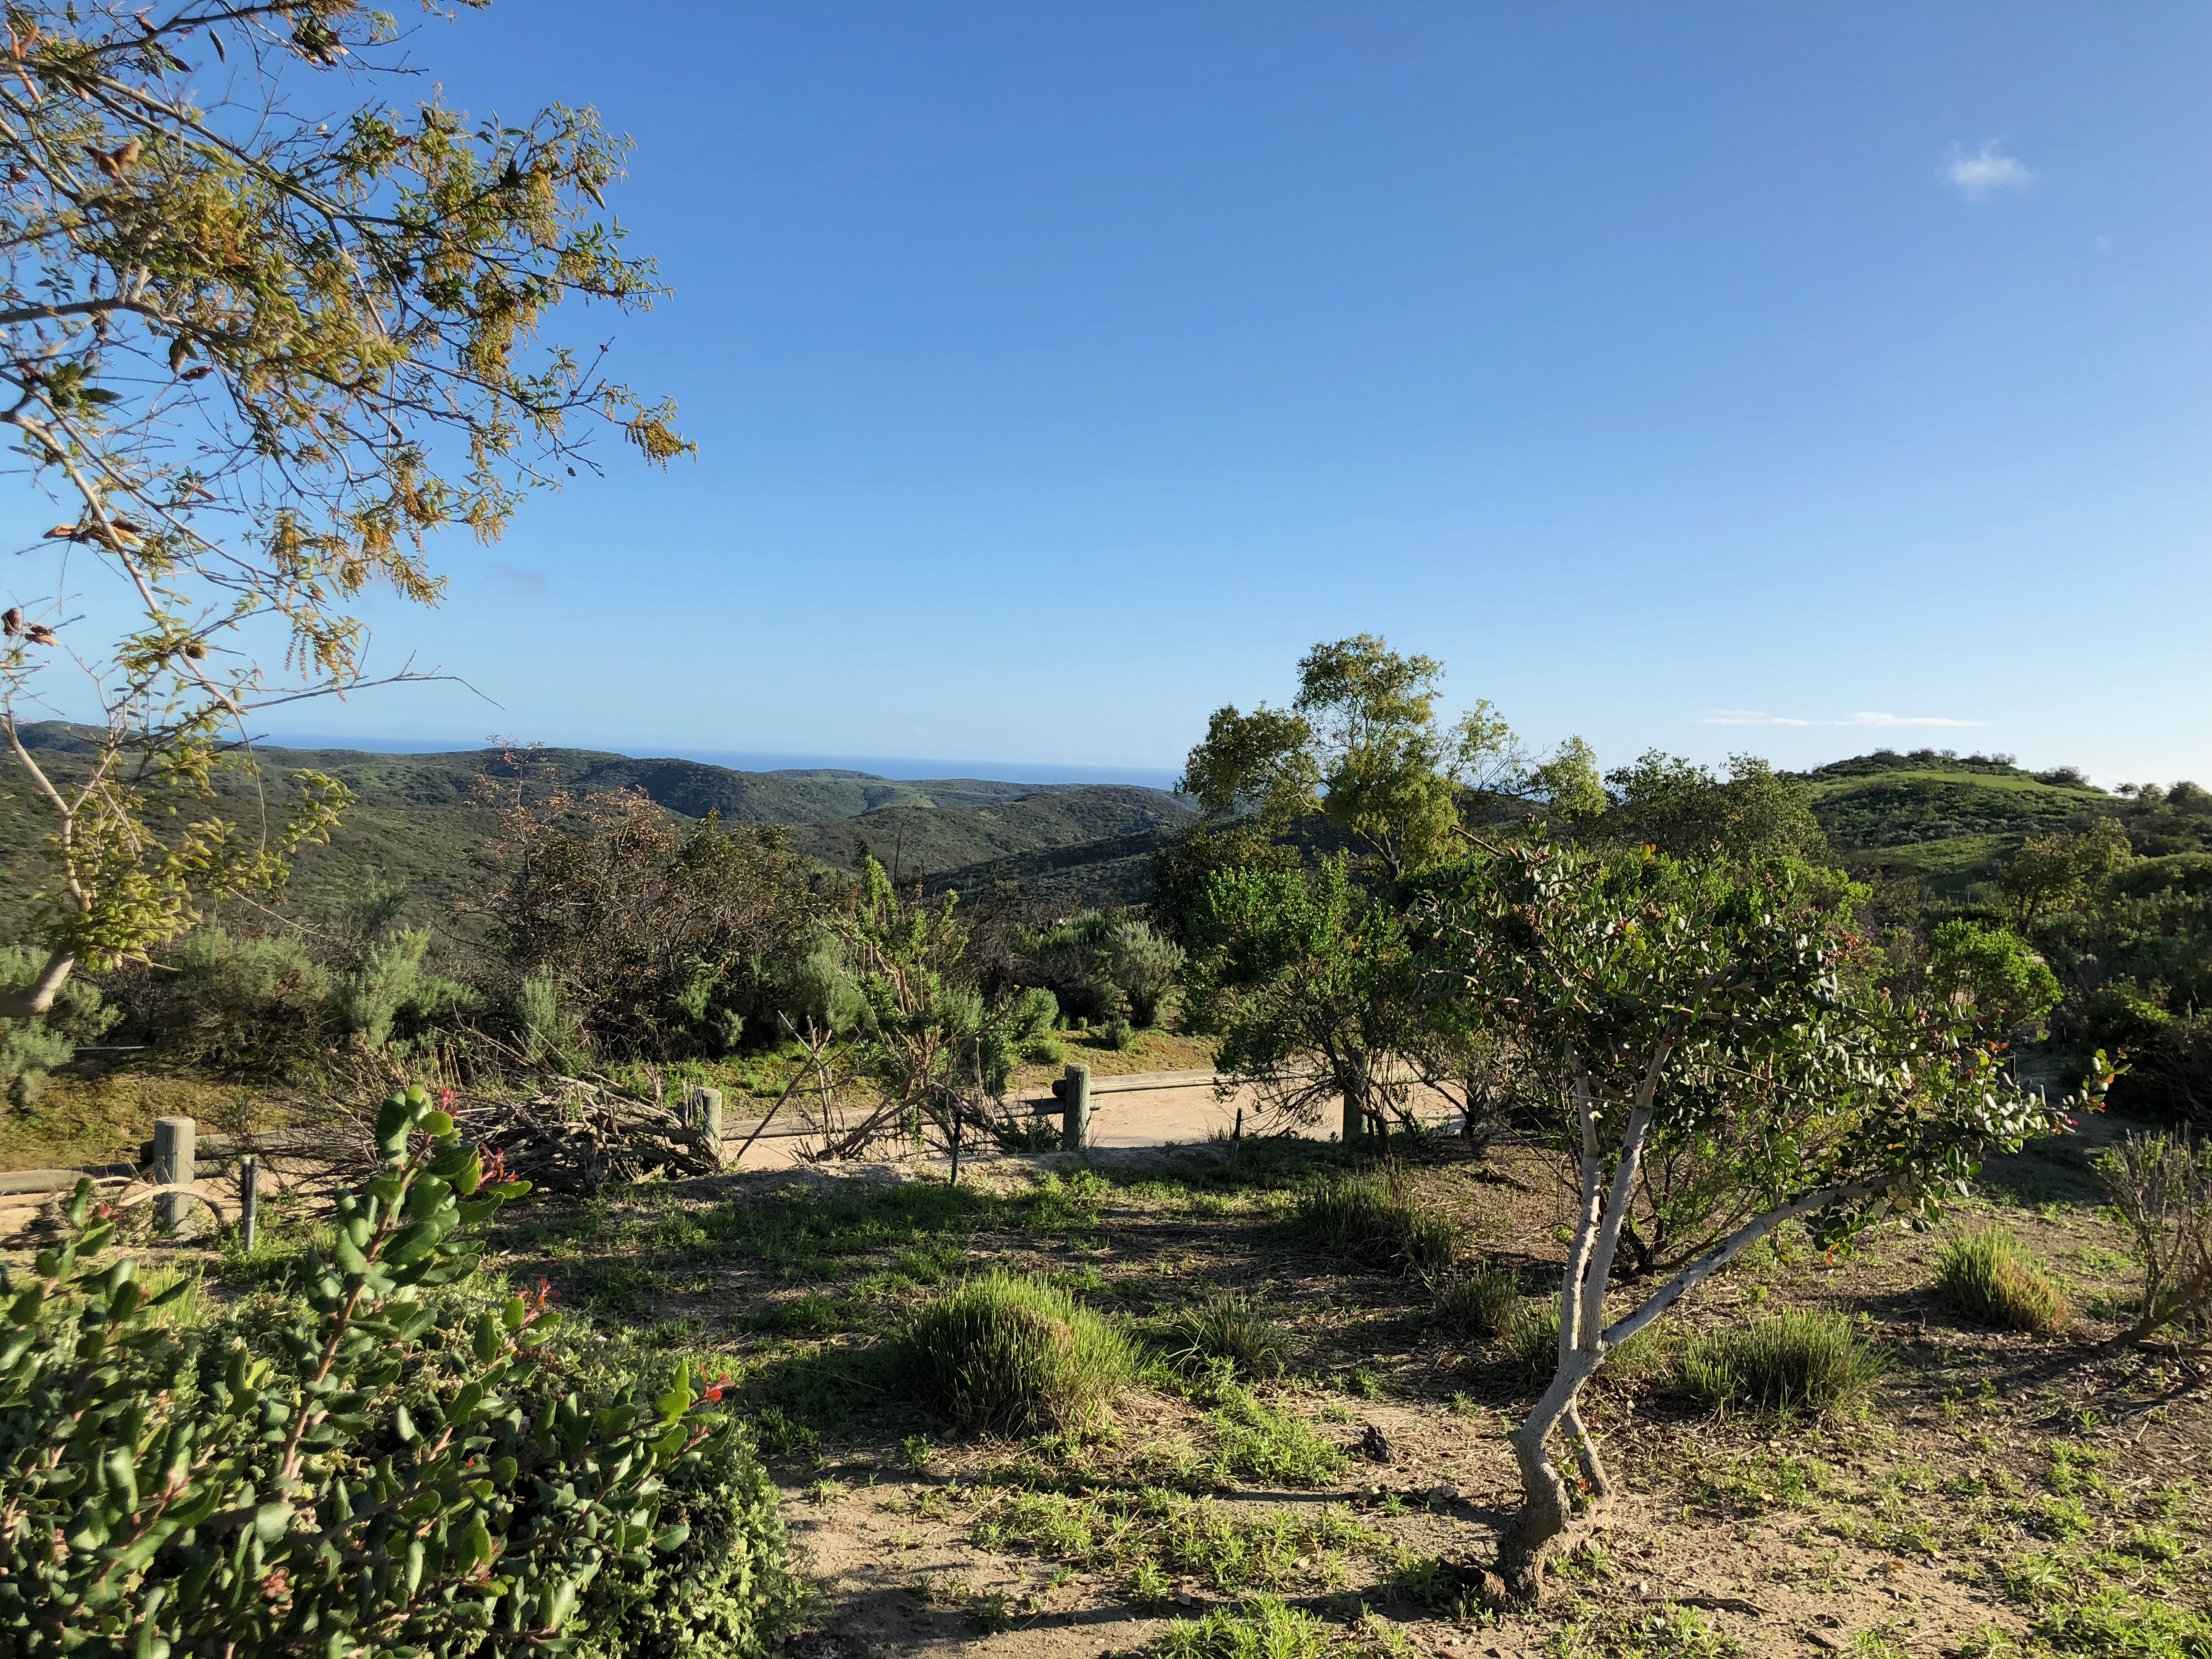 Walking the State Park Trails in Newport Beach